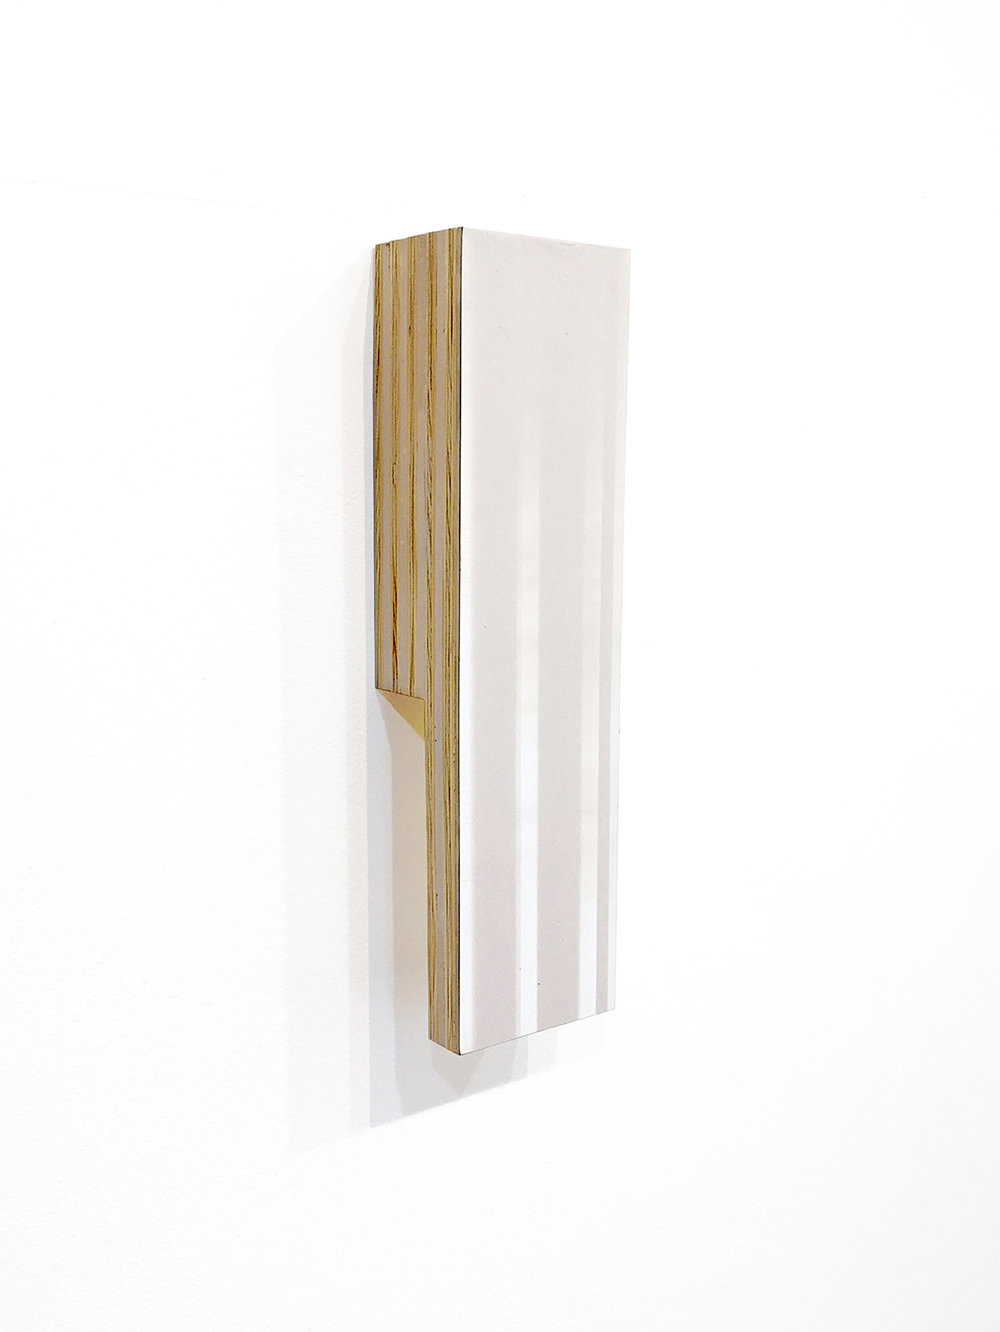 Ben Dallas About Nothing 25, 2018 Acrylic Glaze, Board, Plywood, Spackle 12 x 3.5 x 2.25 inches